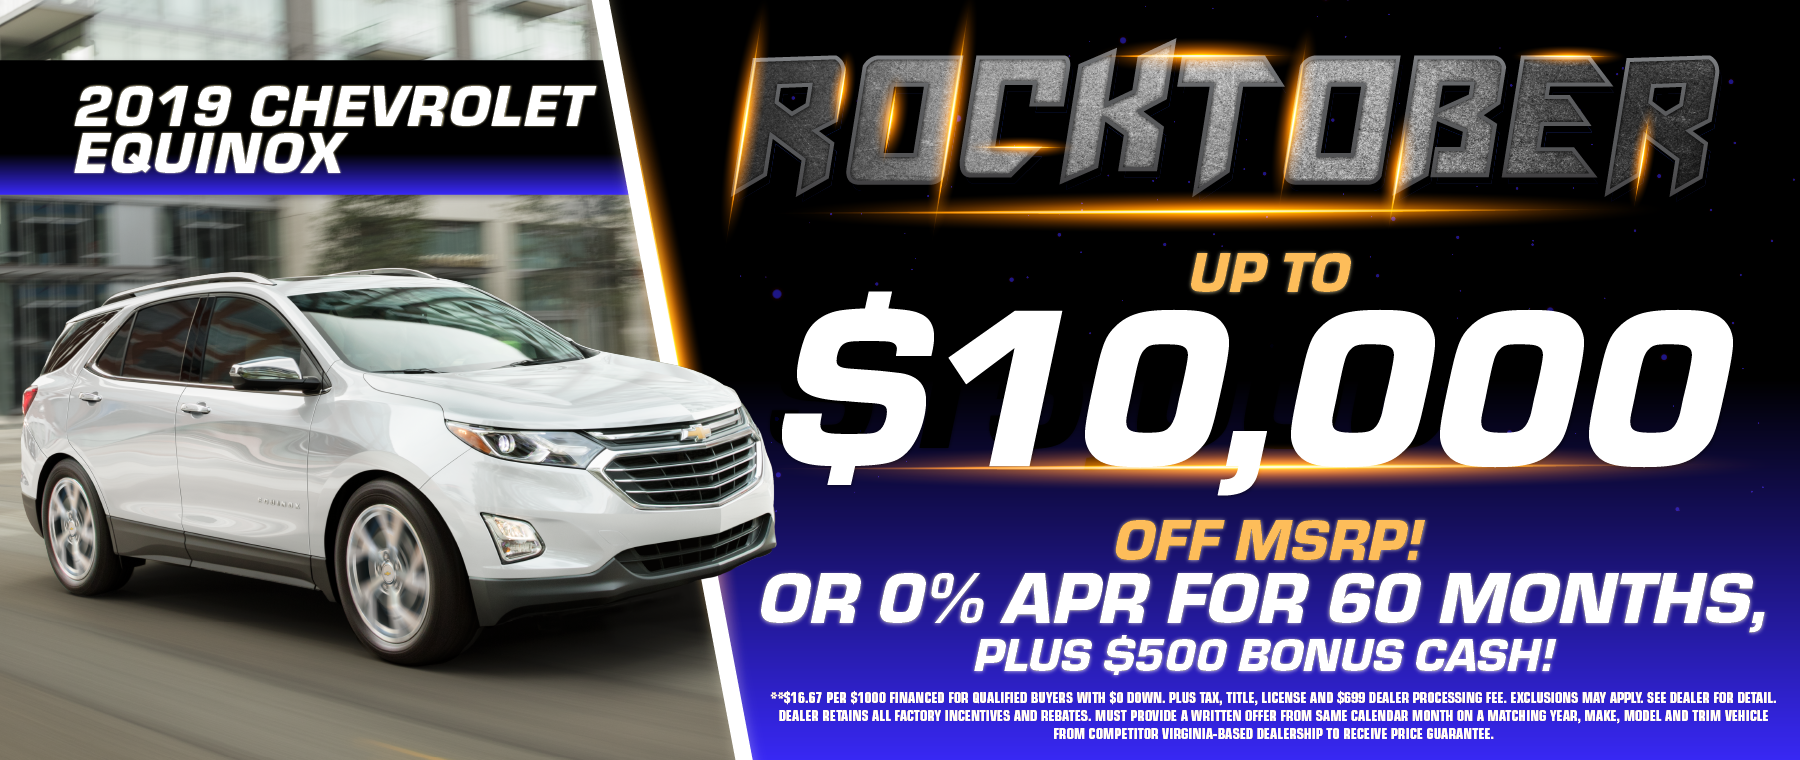 2019 Chevy Equinox offer and discount!